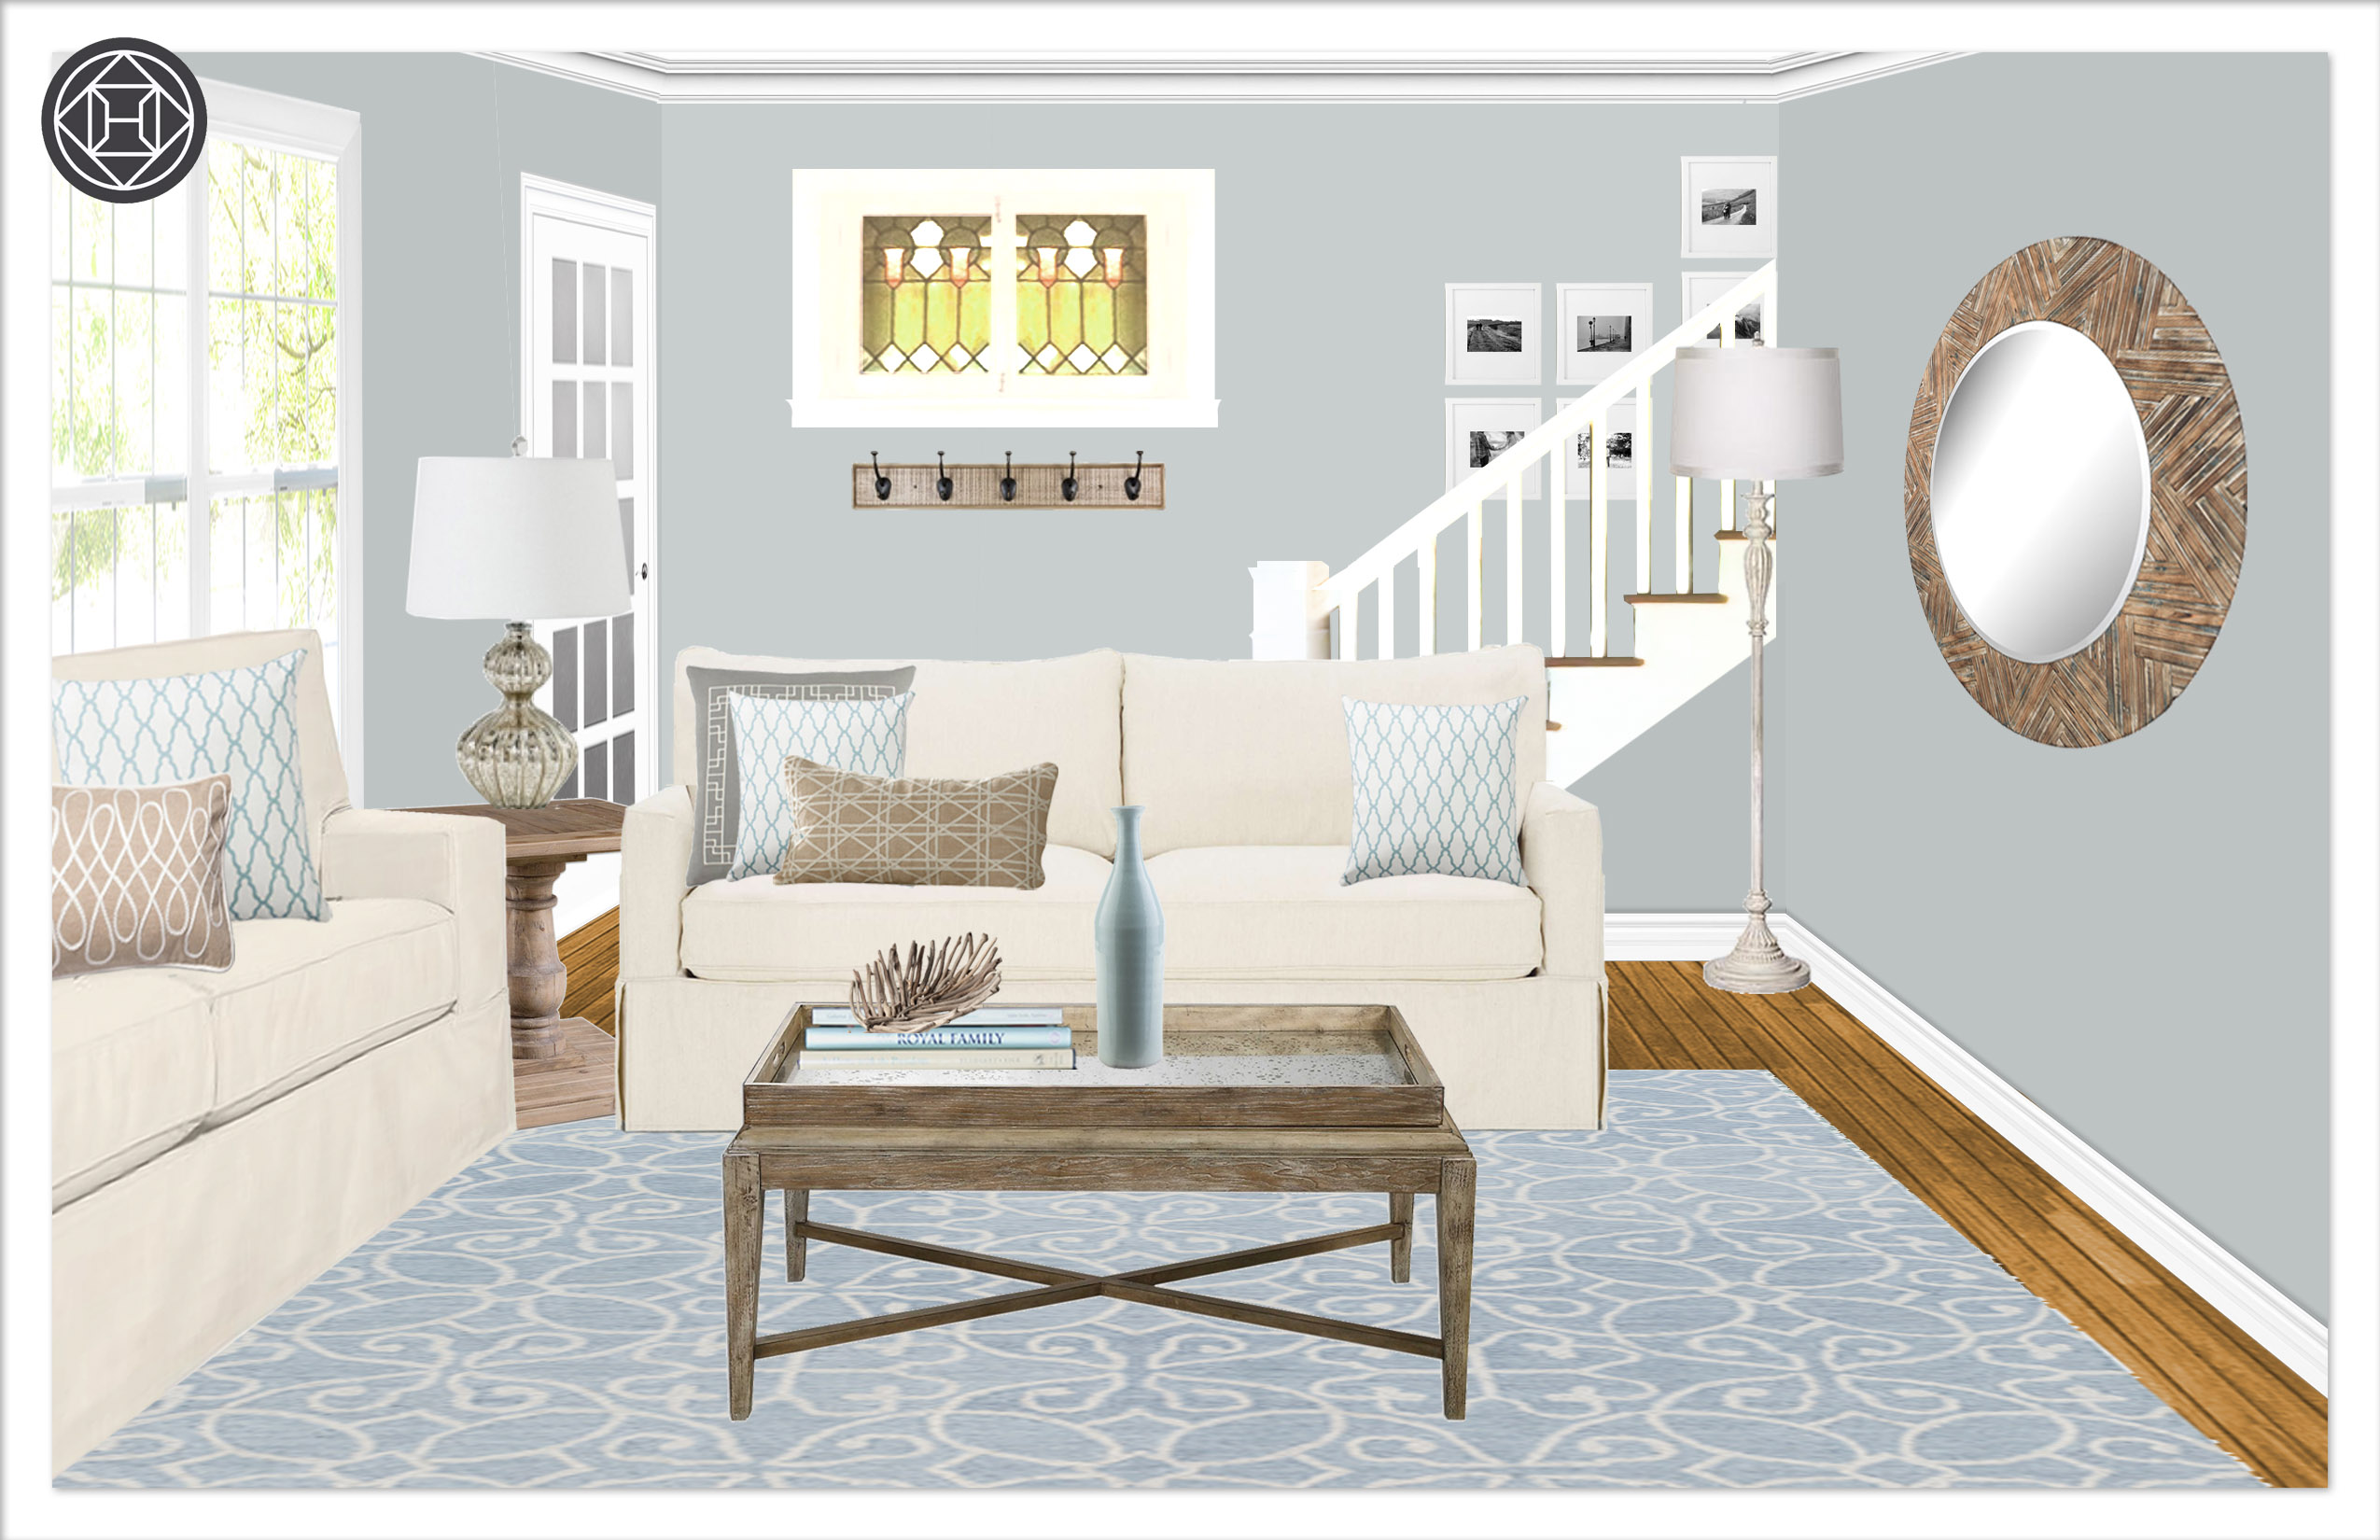 Living room 10, Layout 2.2 Kylie T interiors